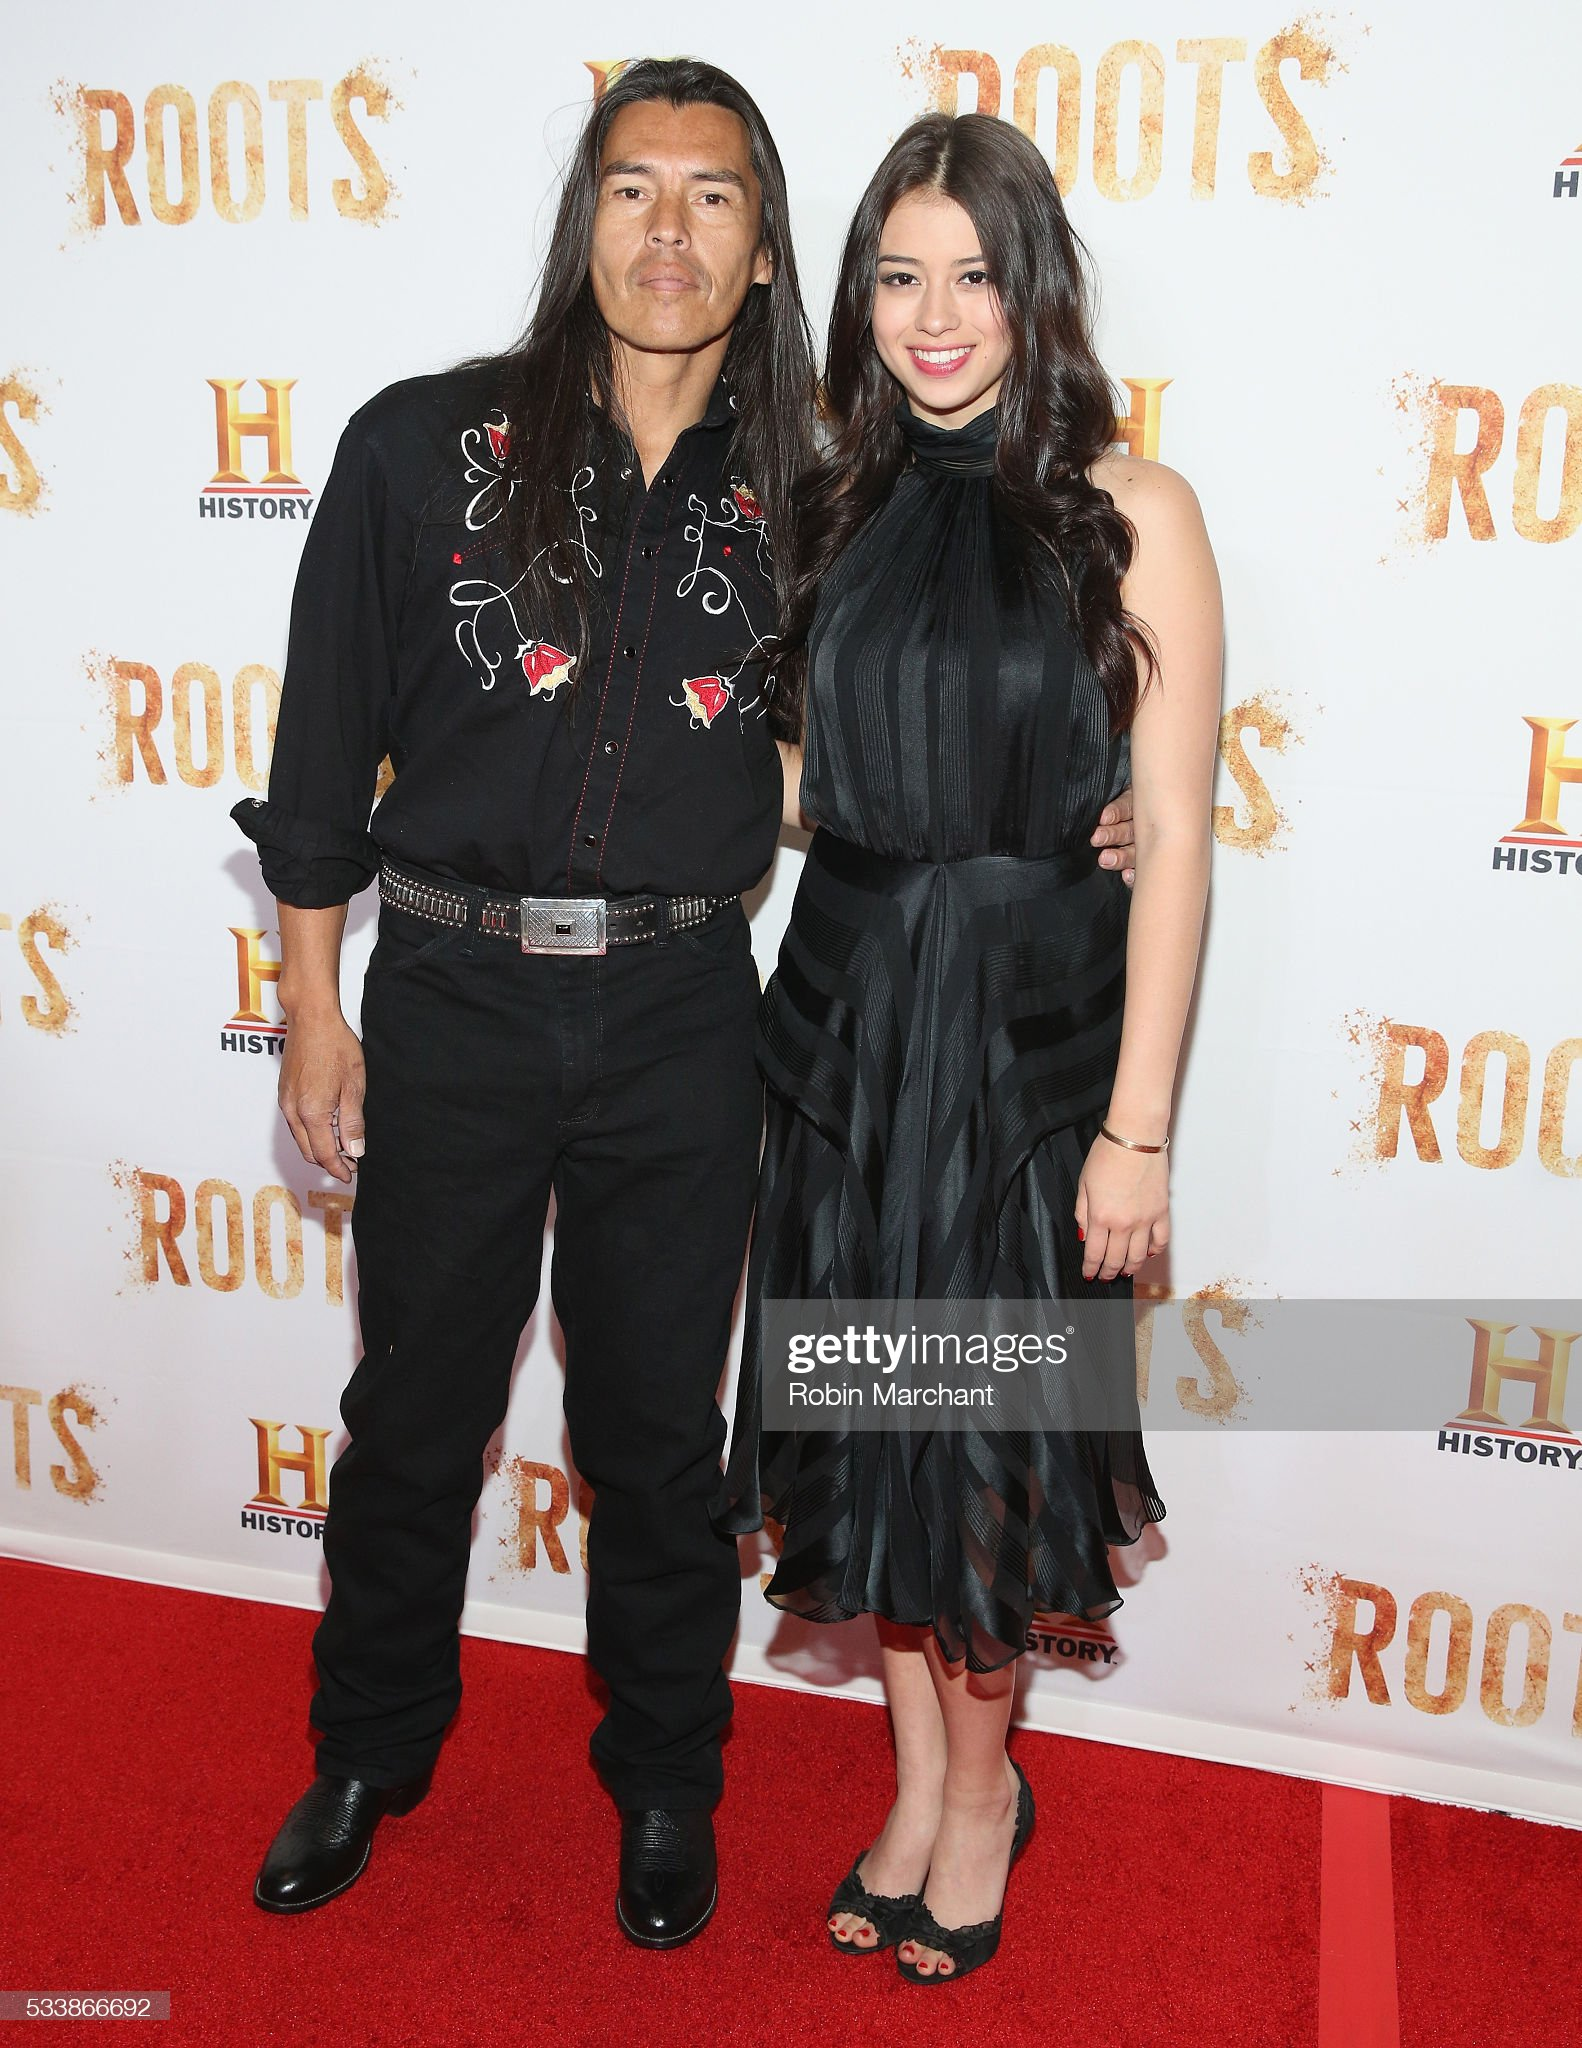 ESTADOS UNIDOS - Etnografía, cultura y mestizaje / Etnography and racial mixtures in the United States of America David-midthunder-and-amber-midthunder-attend-roots-night-one-at-picture-id533866692?s=2048x2048